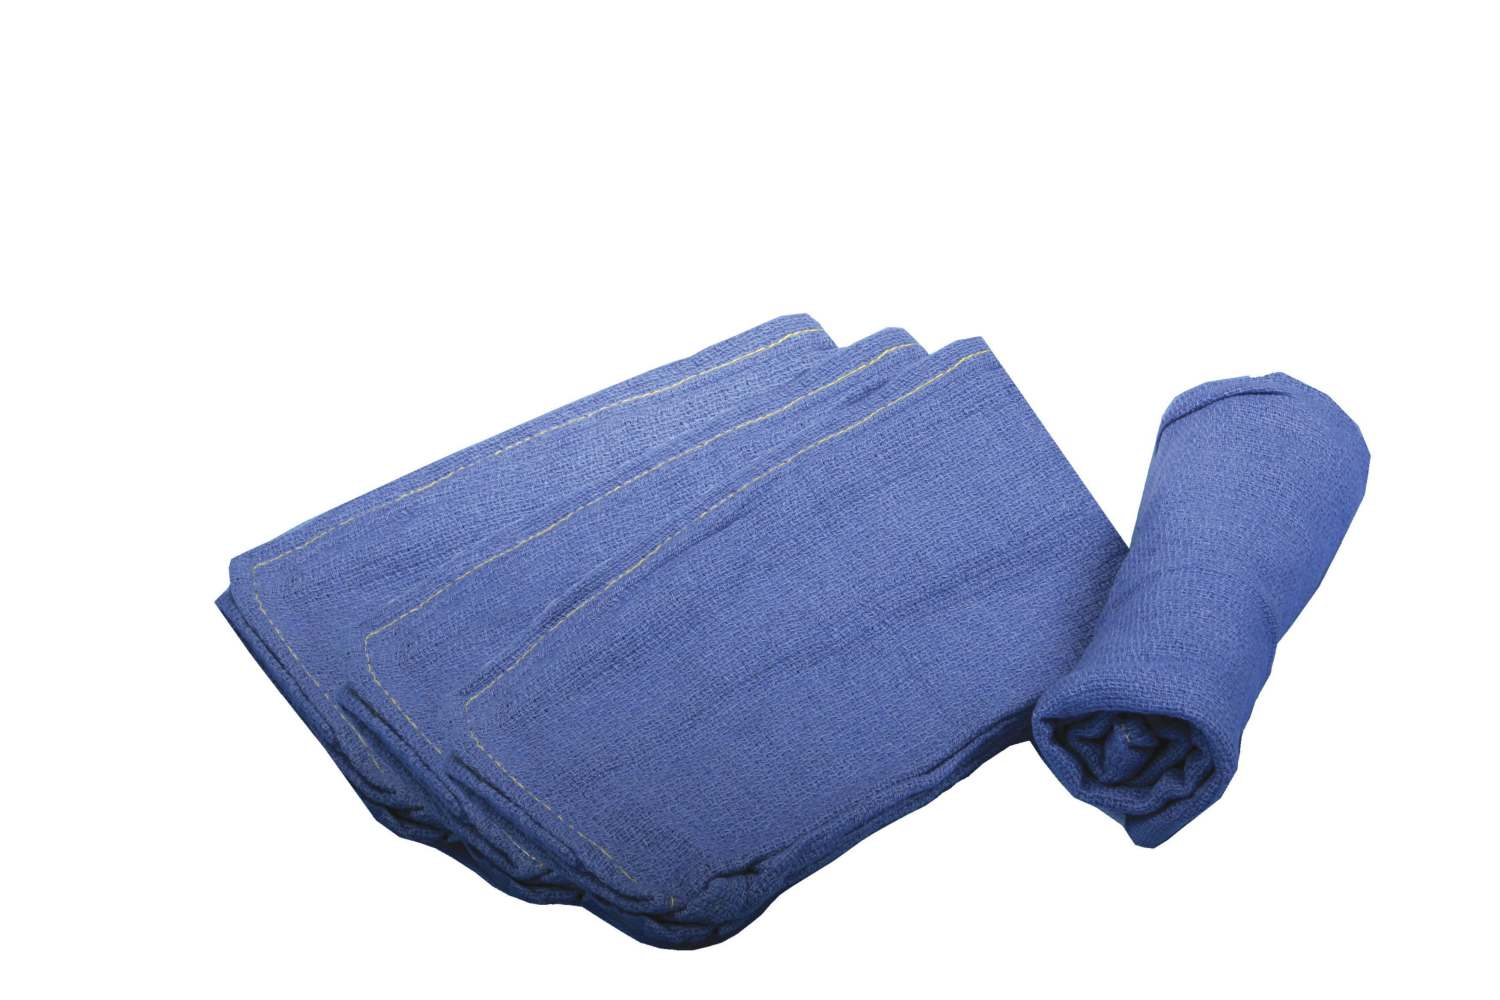 Sterile Disposable X-Ray Detectable OR Towel - Dsp, Blue, Dlx, Xr, Box of 72 - Model MDT2168206XR